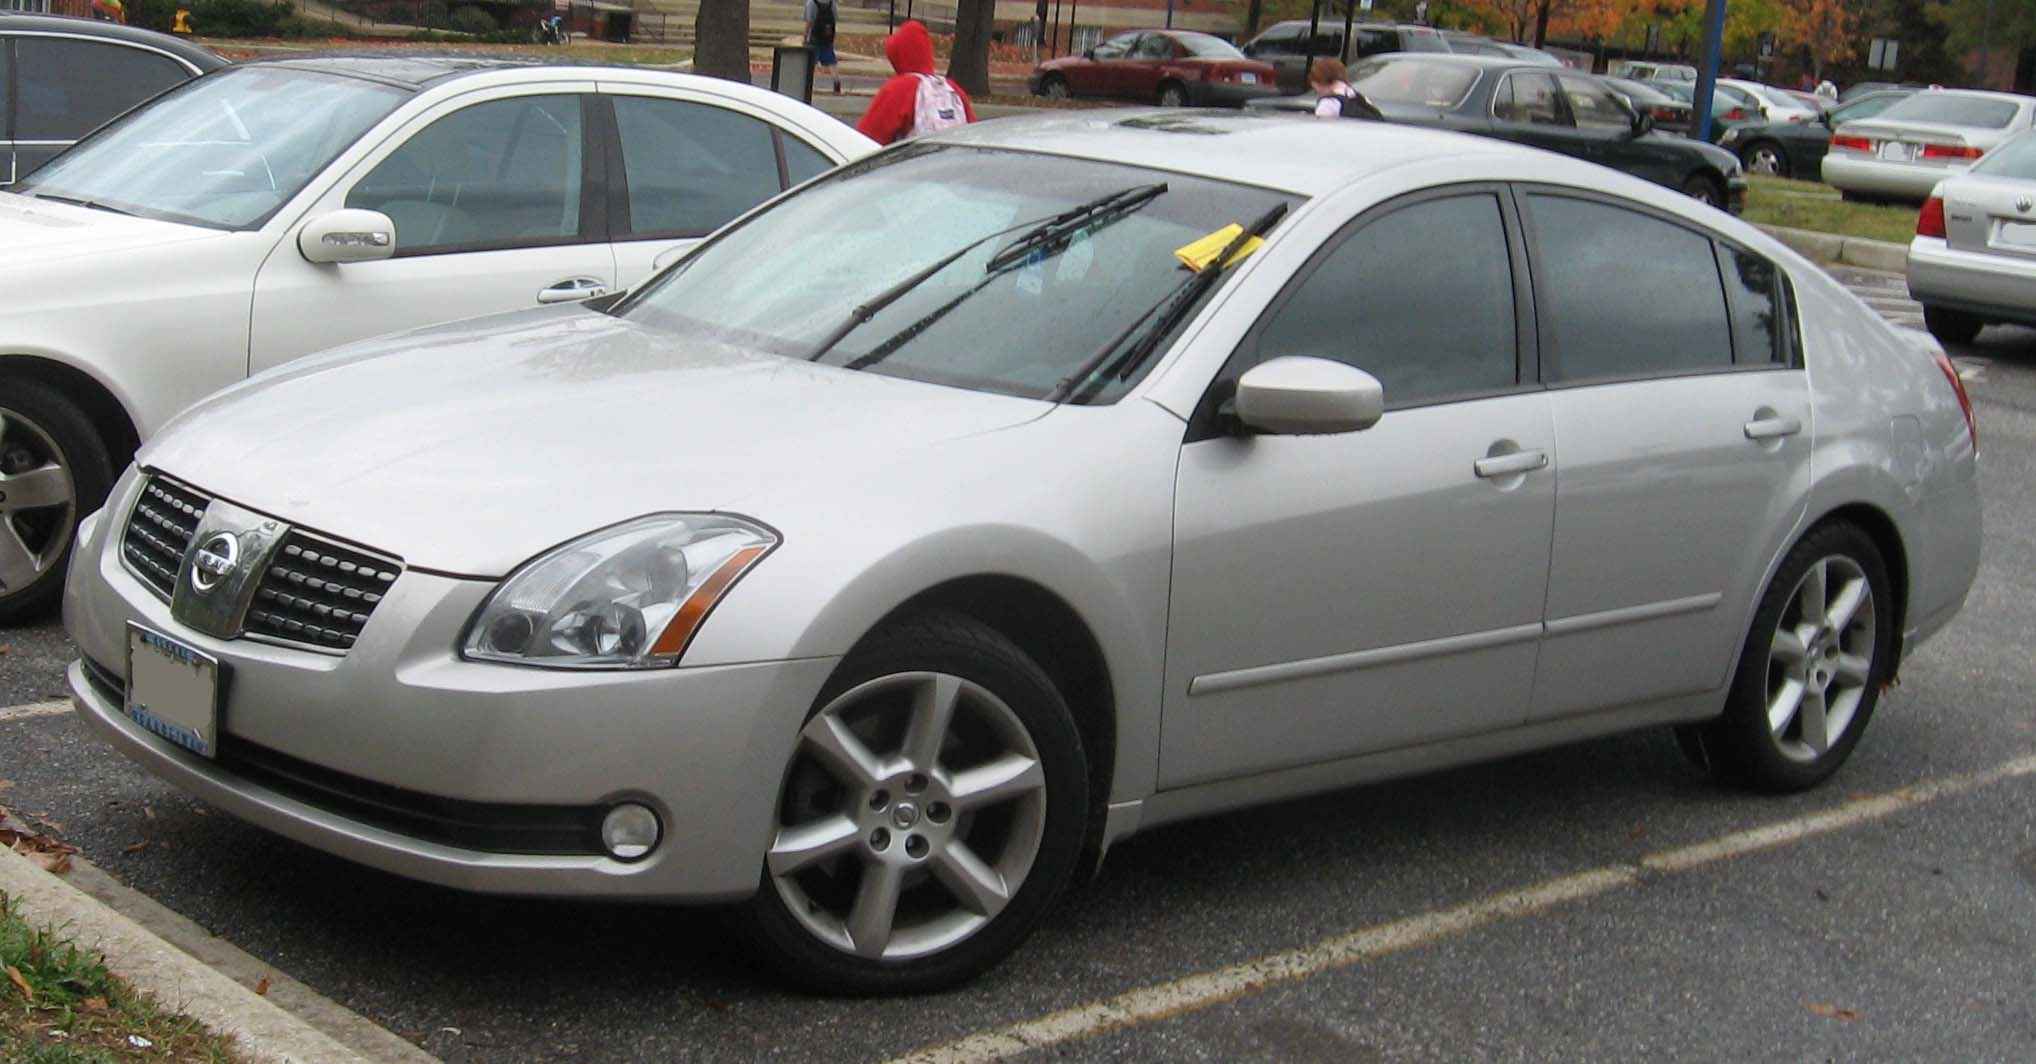 sale inventory sl luxury nissan at cars for xchange lockport details in il maxima